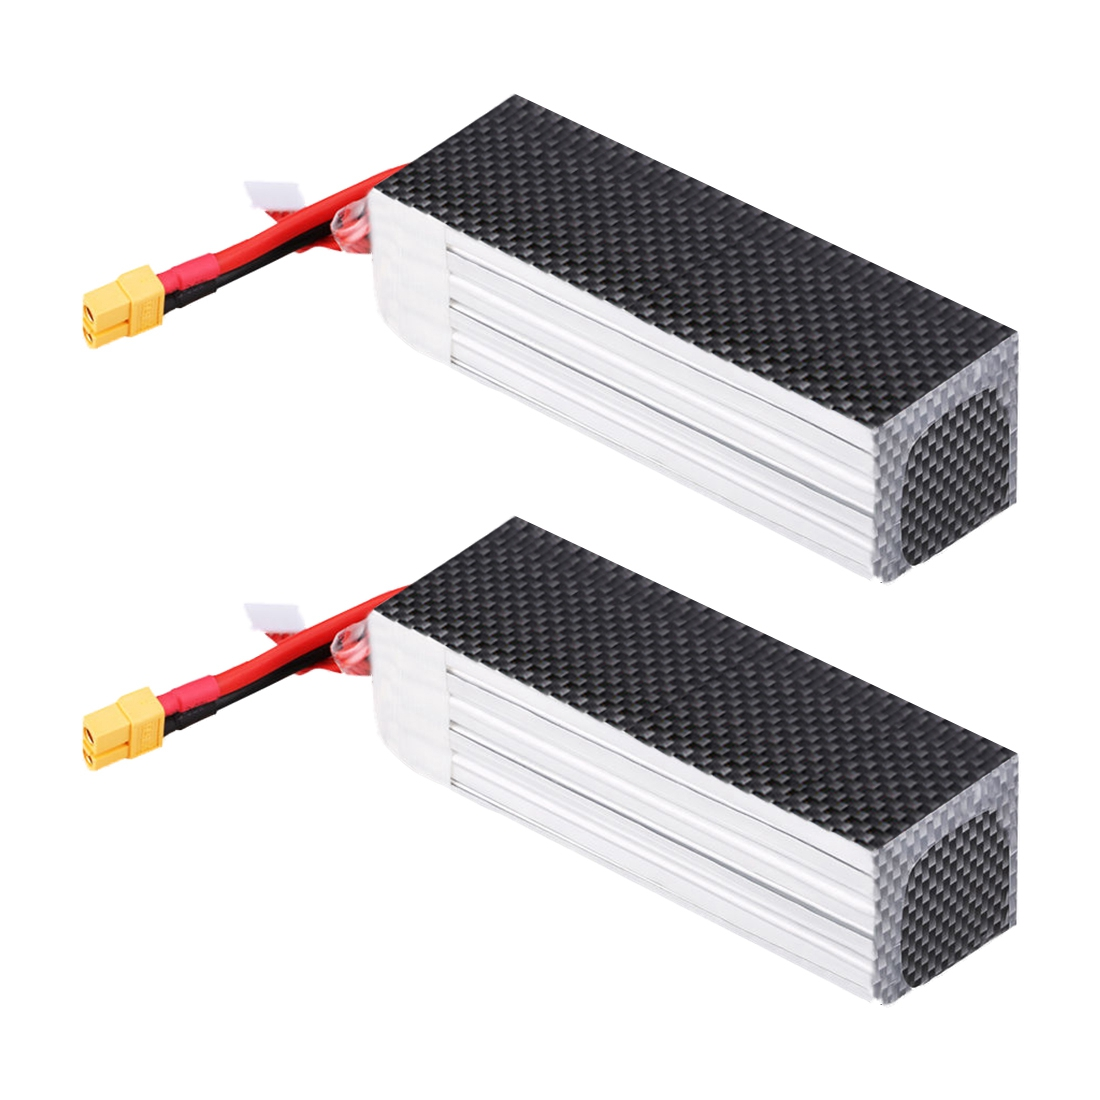 MACH 2X 6S 22.2V 3300mAh 45C XT60 Plug Li-Po RC Battery Pack for Helicopter Car Truck